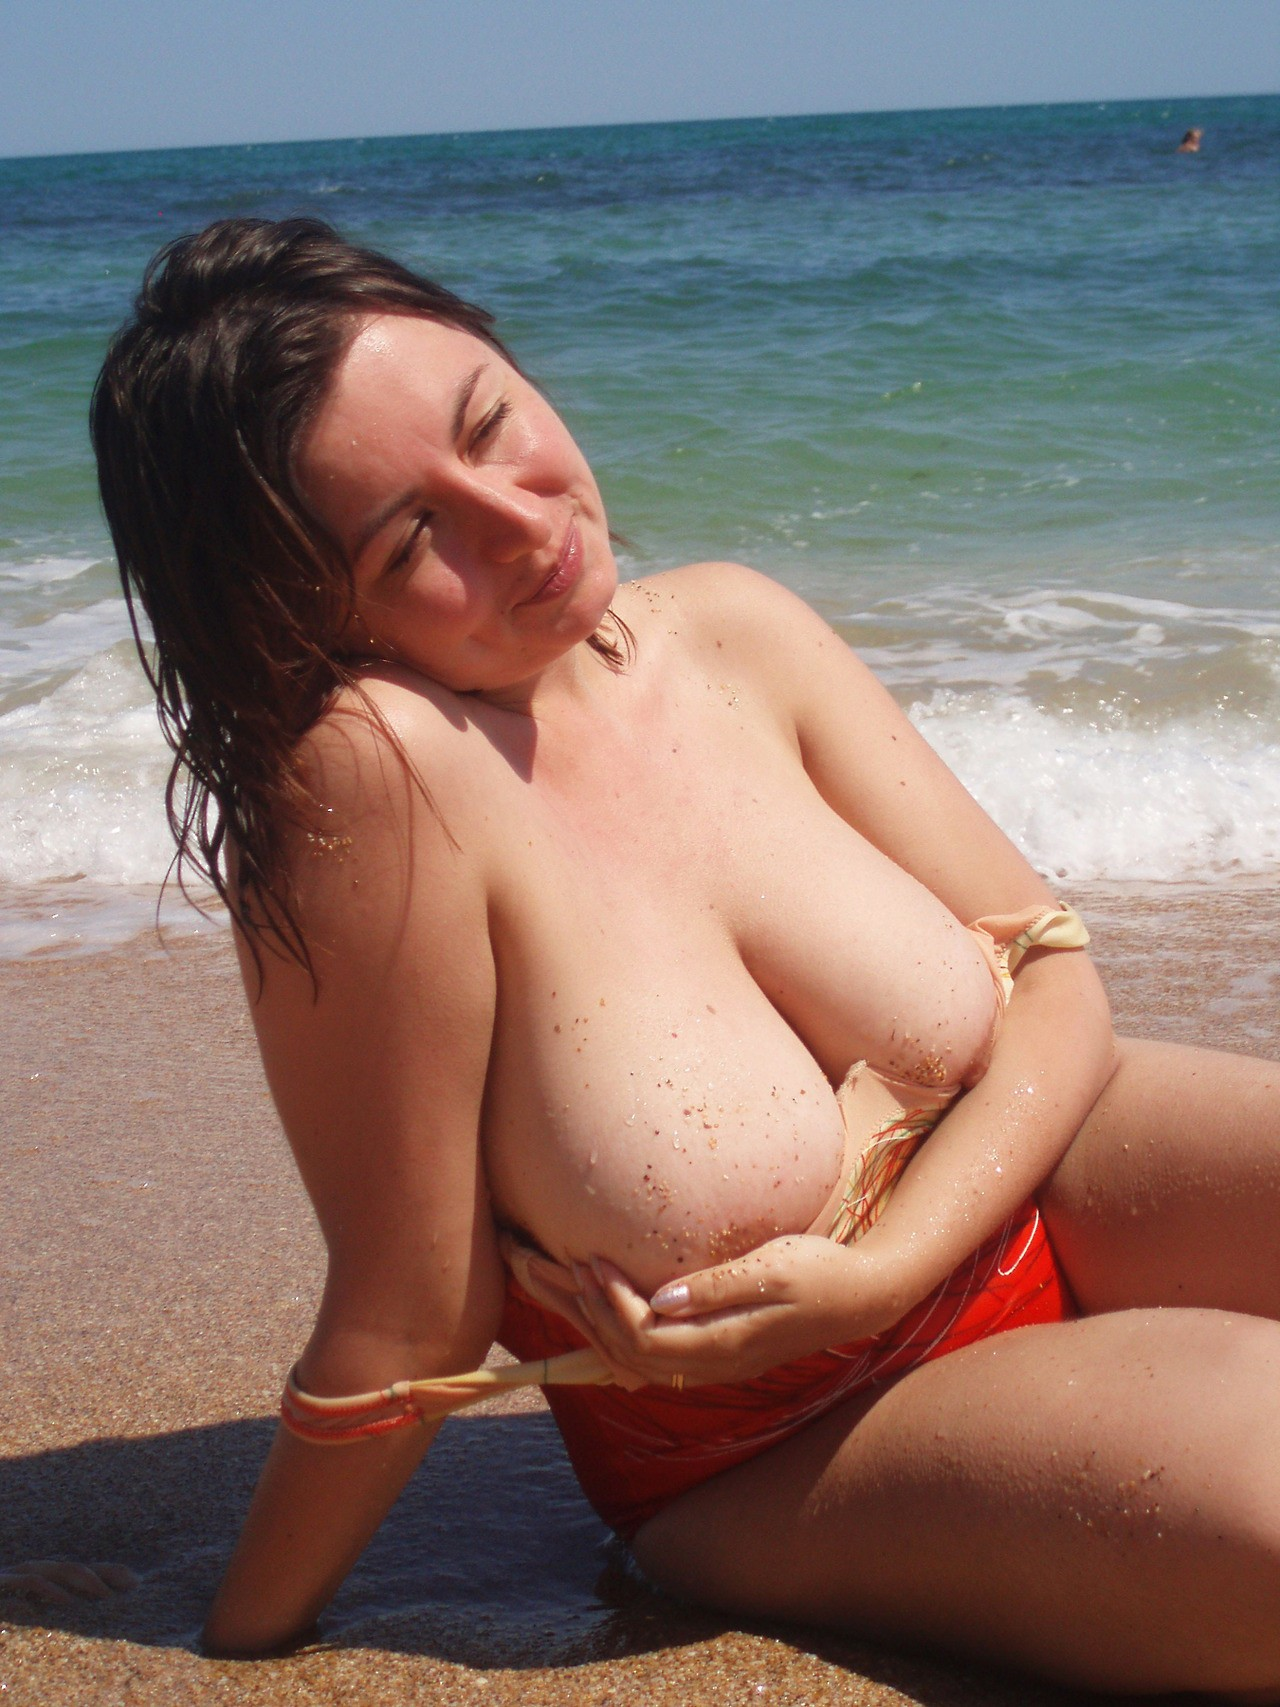 Consider, what beach booobs flash big dick think